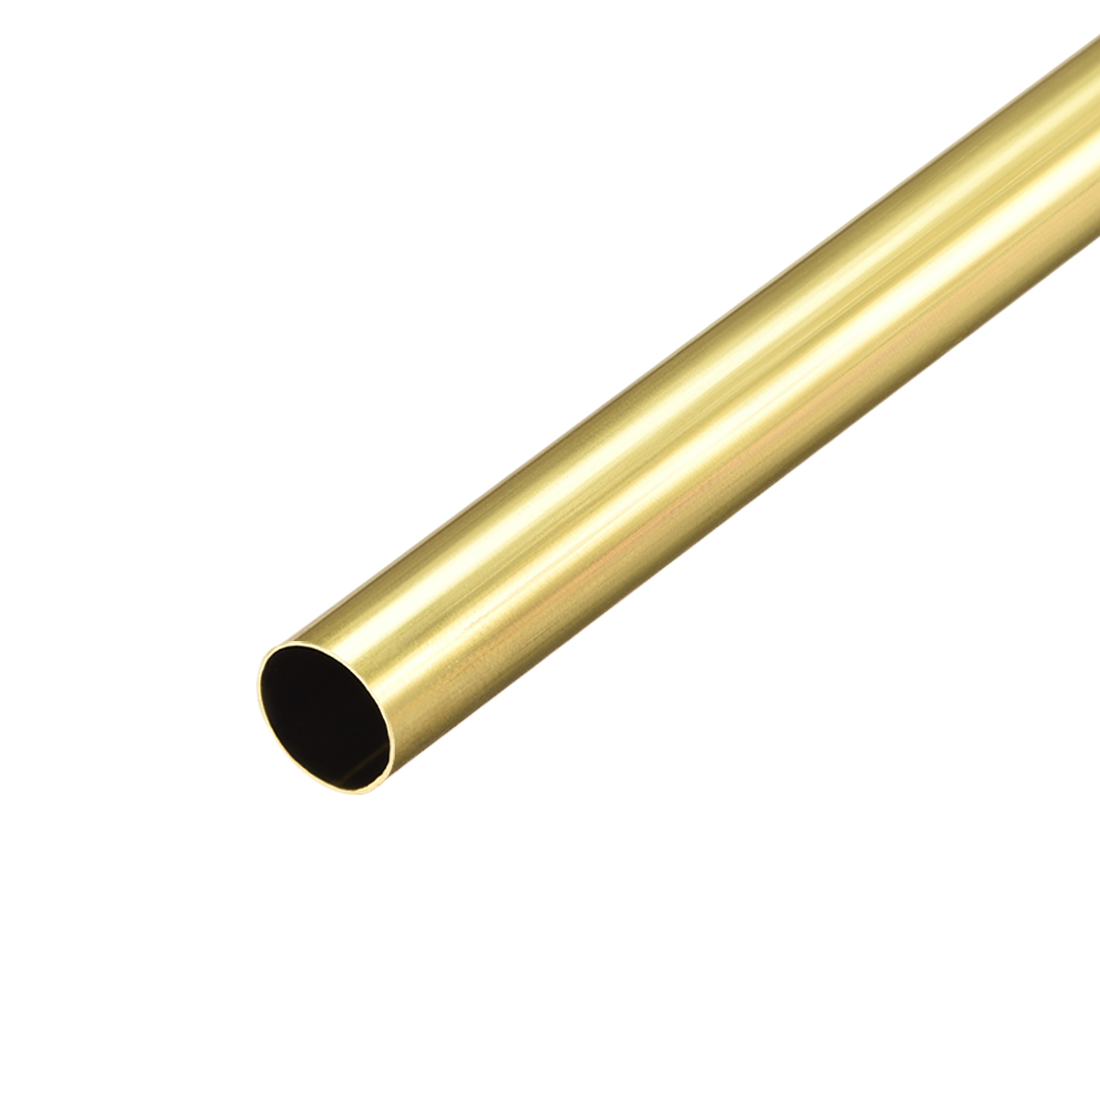 Uxcell Brass Round Tube 300mm Length 10mm OD 0.2mm Wall Thickness Seamless Straight Pipe Tubing